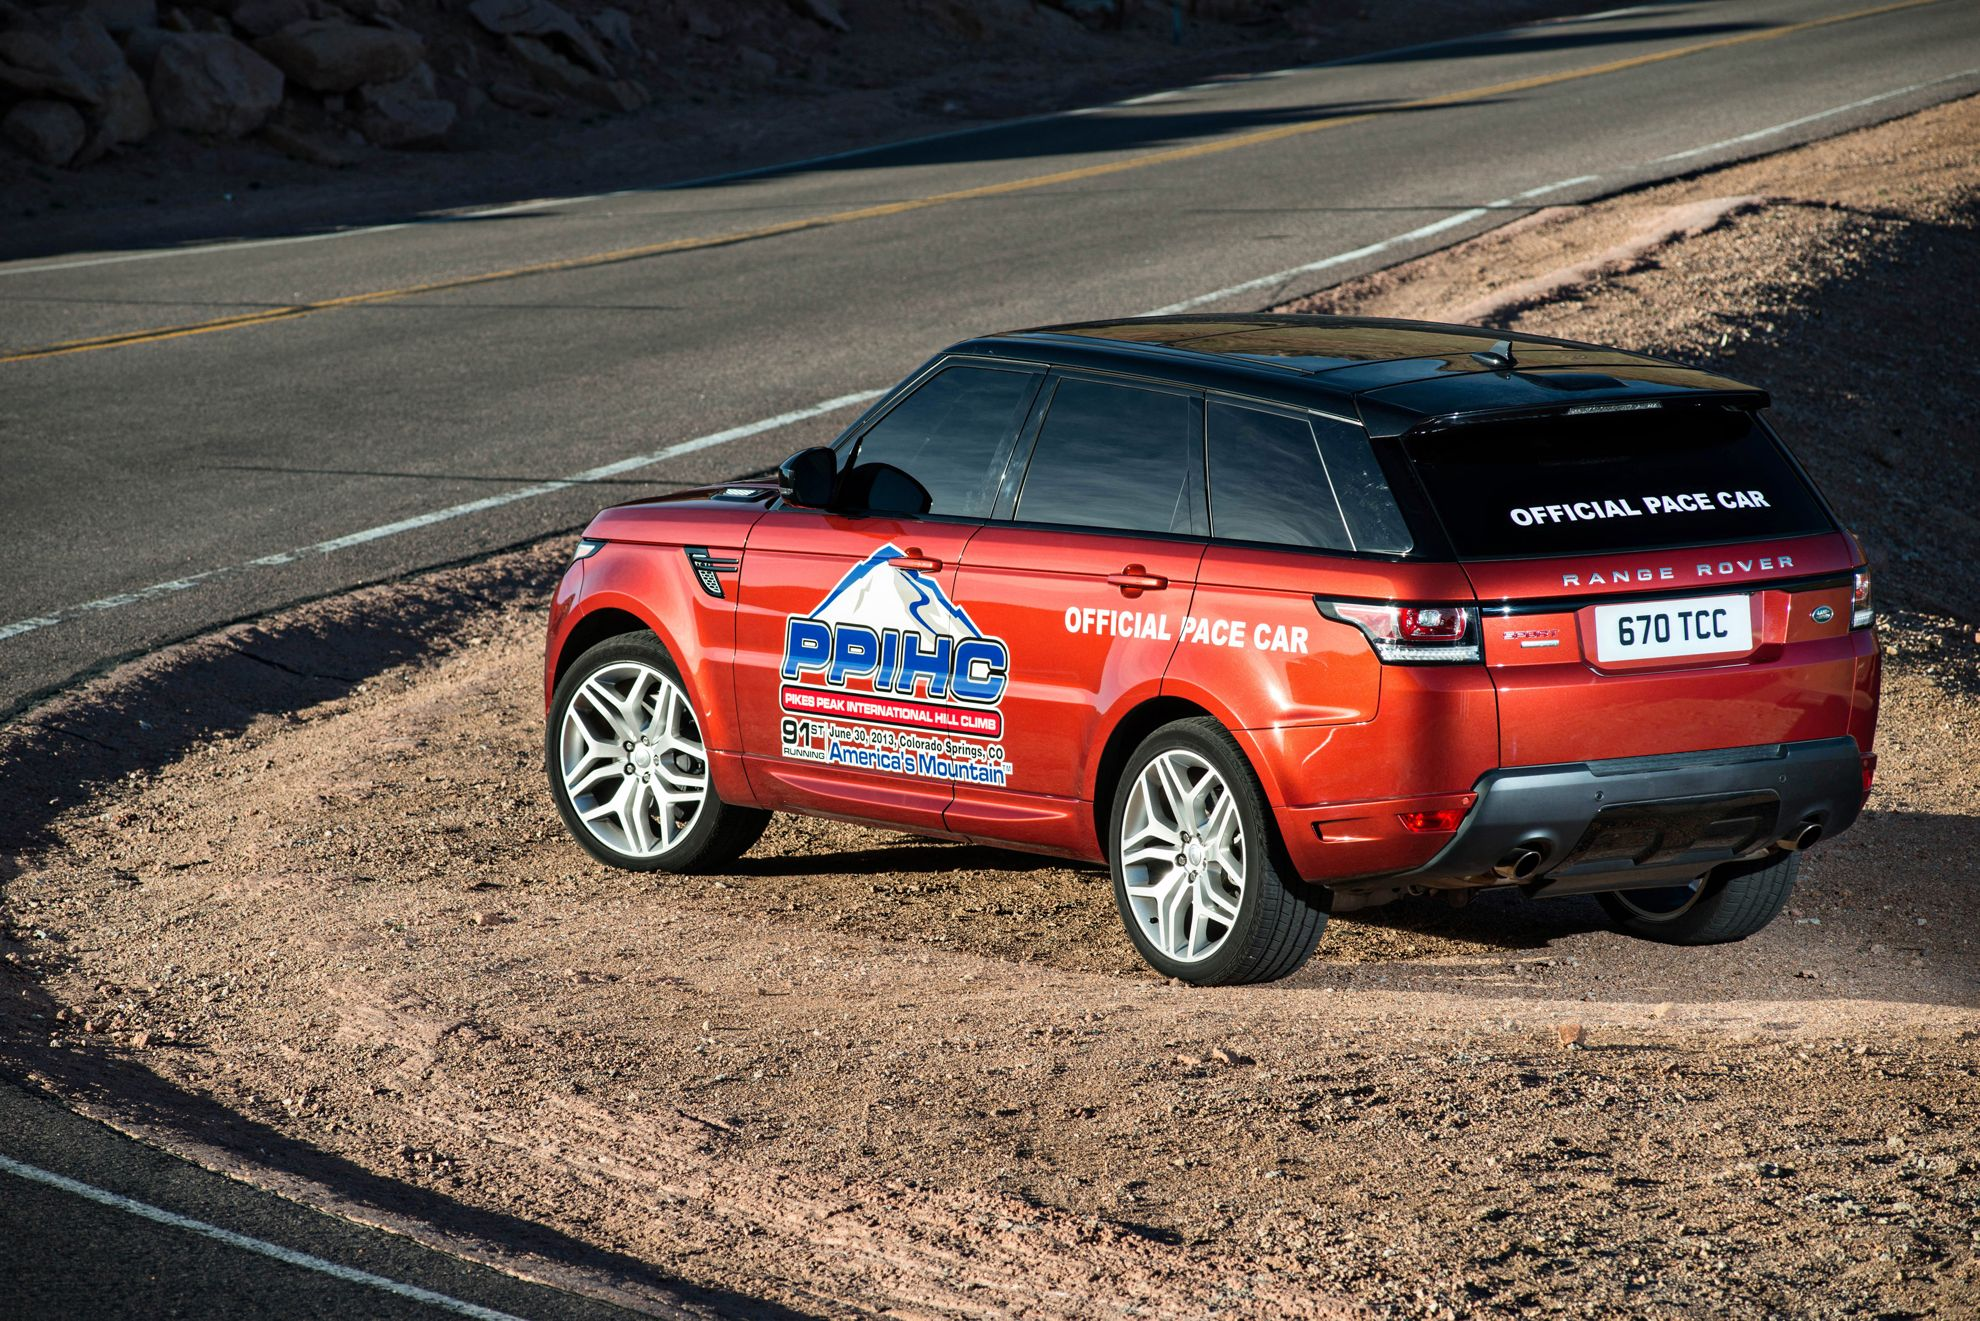 Range Rover at Pikes Peak